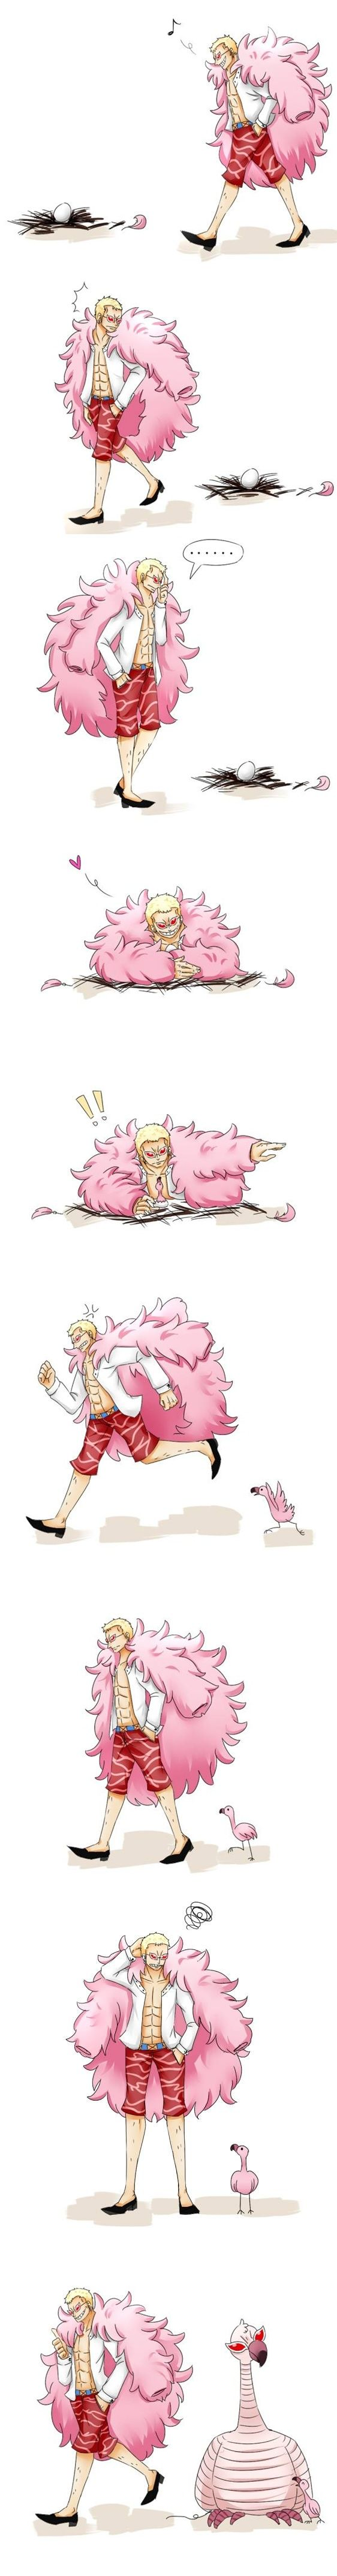 Doflamingo xD from the One Piece anime http://anime.about.com/od/One-Piece-Anime/fl/Where-to-Watch-One-Piece-Anime-Episodes-Online-for-Free.htm